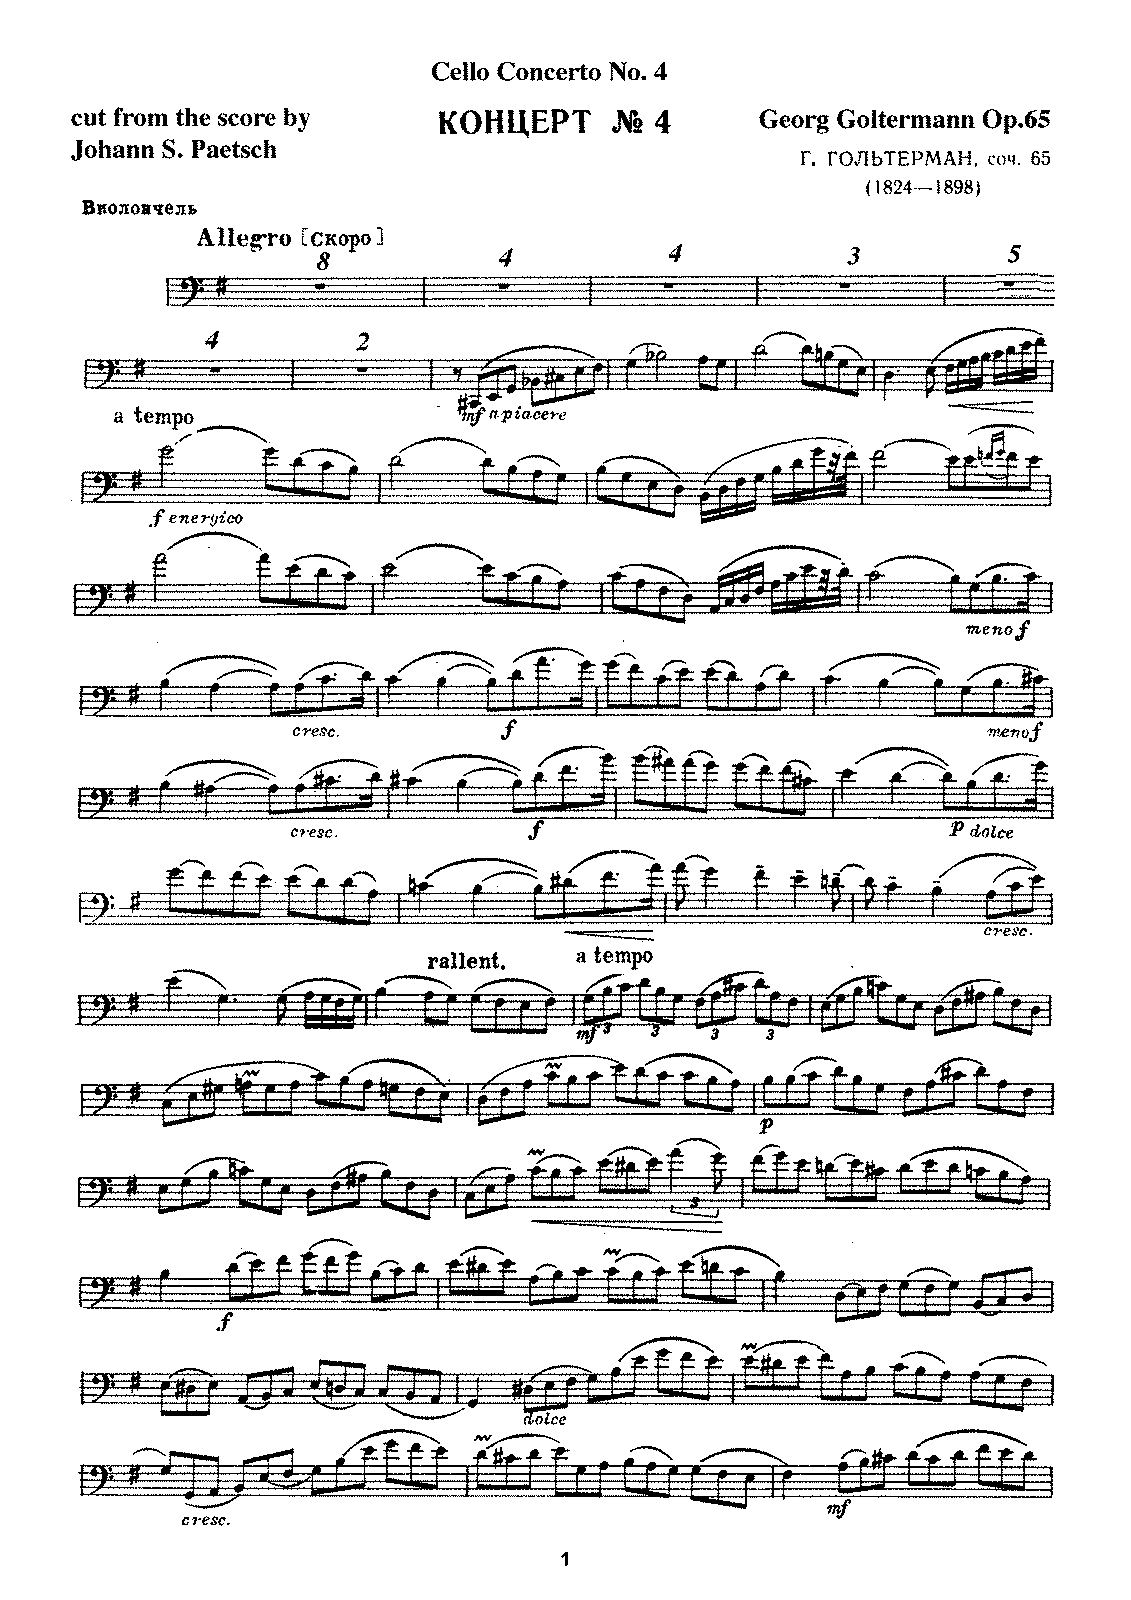 PMLP44344-Goltermann - Cello Concerto No4 Op65 (Paetsch) cello part .pdf